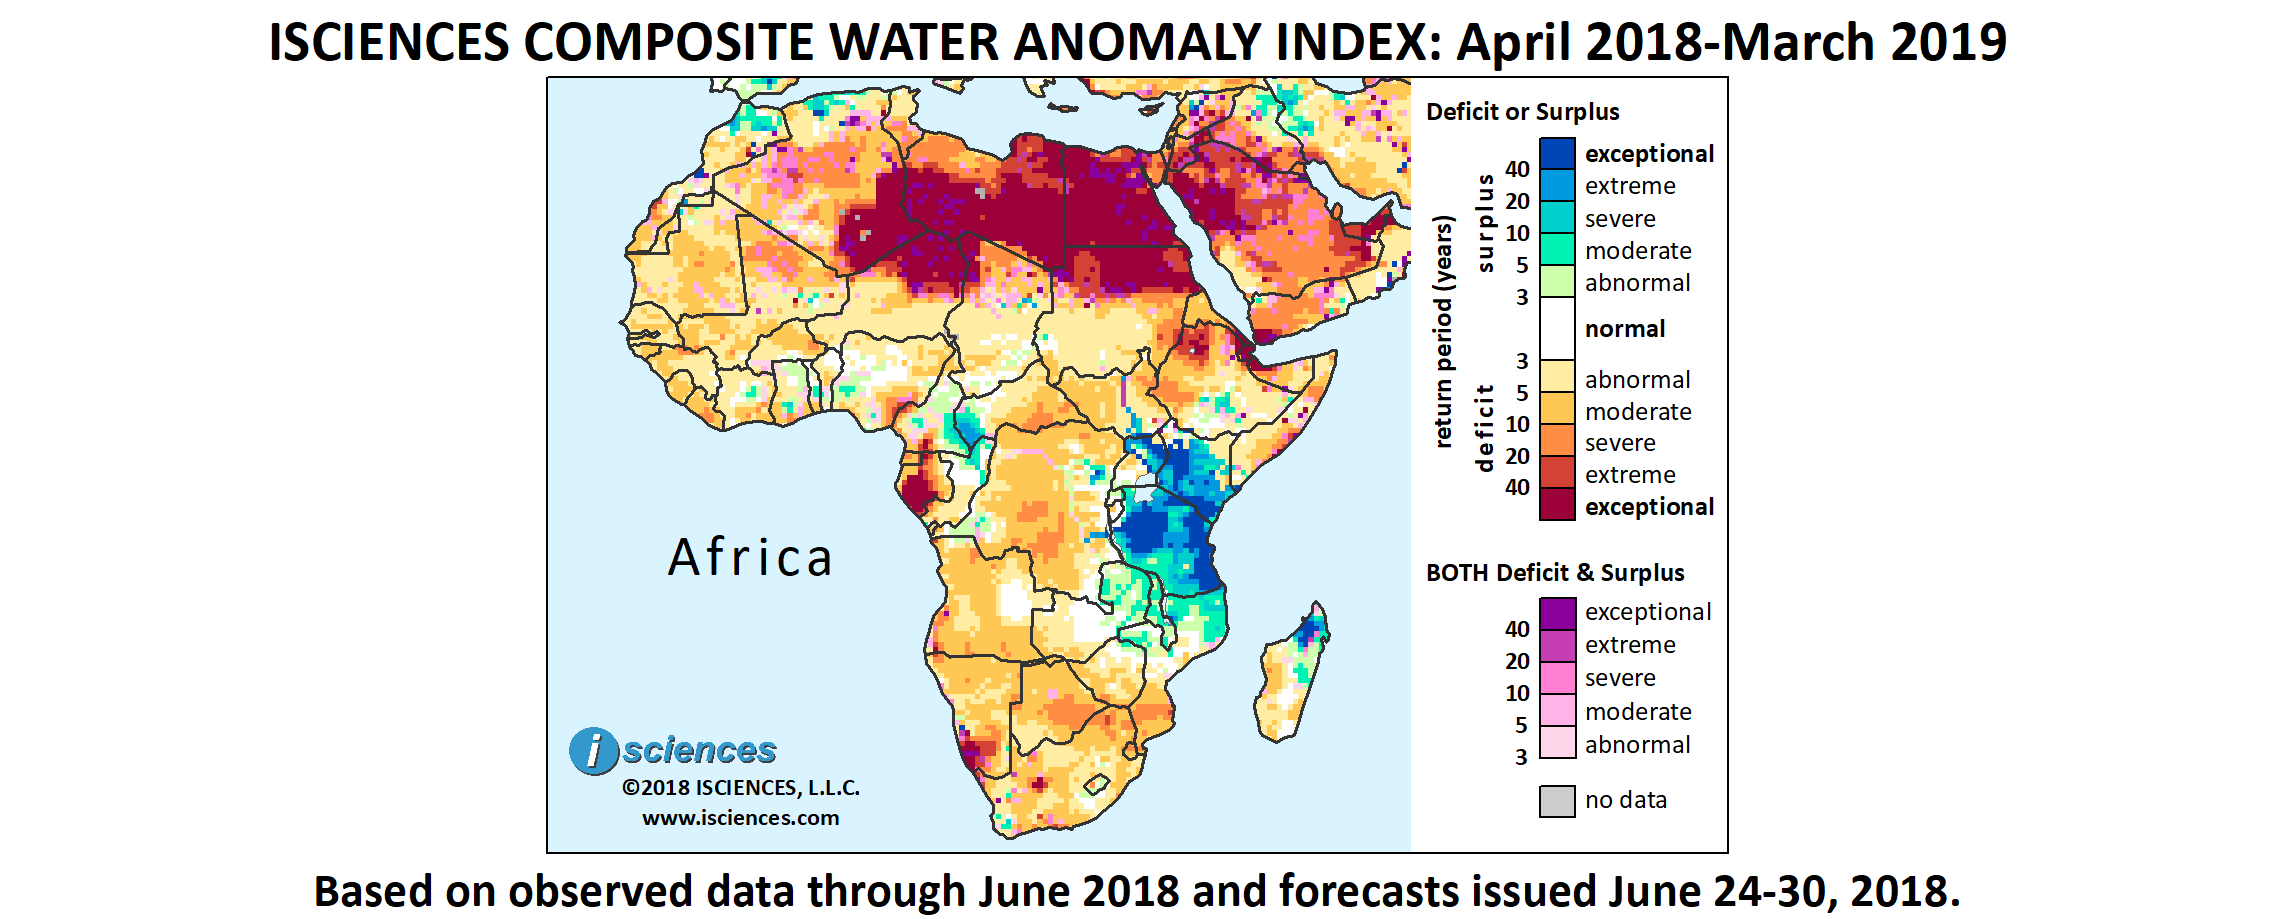 ISciences_Africa_R201806_12mo_twit_pic.png